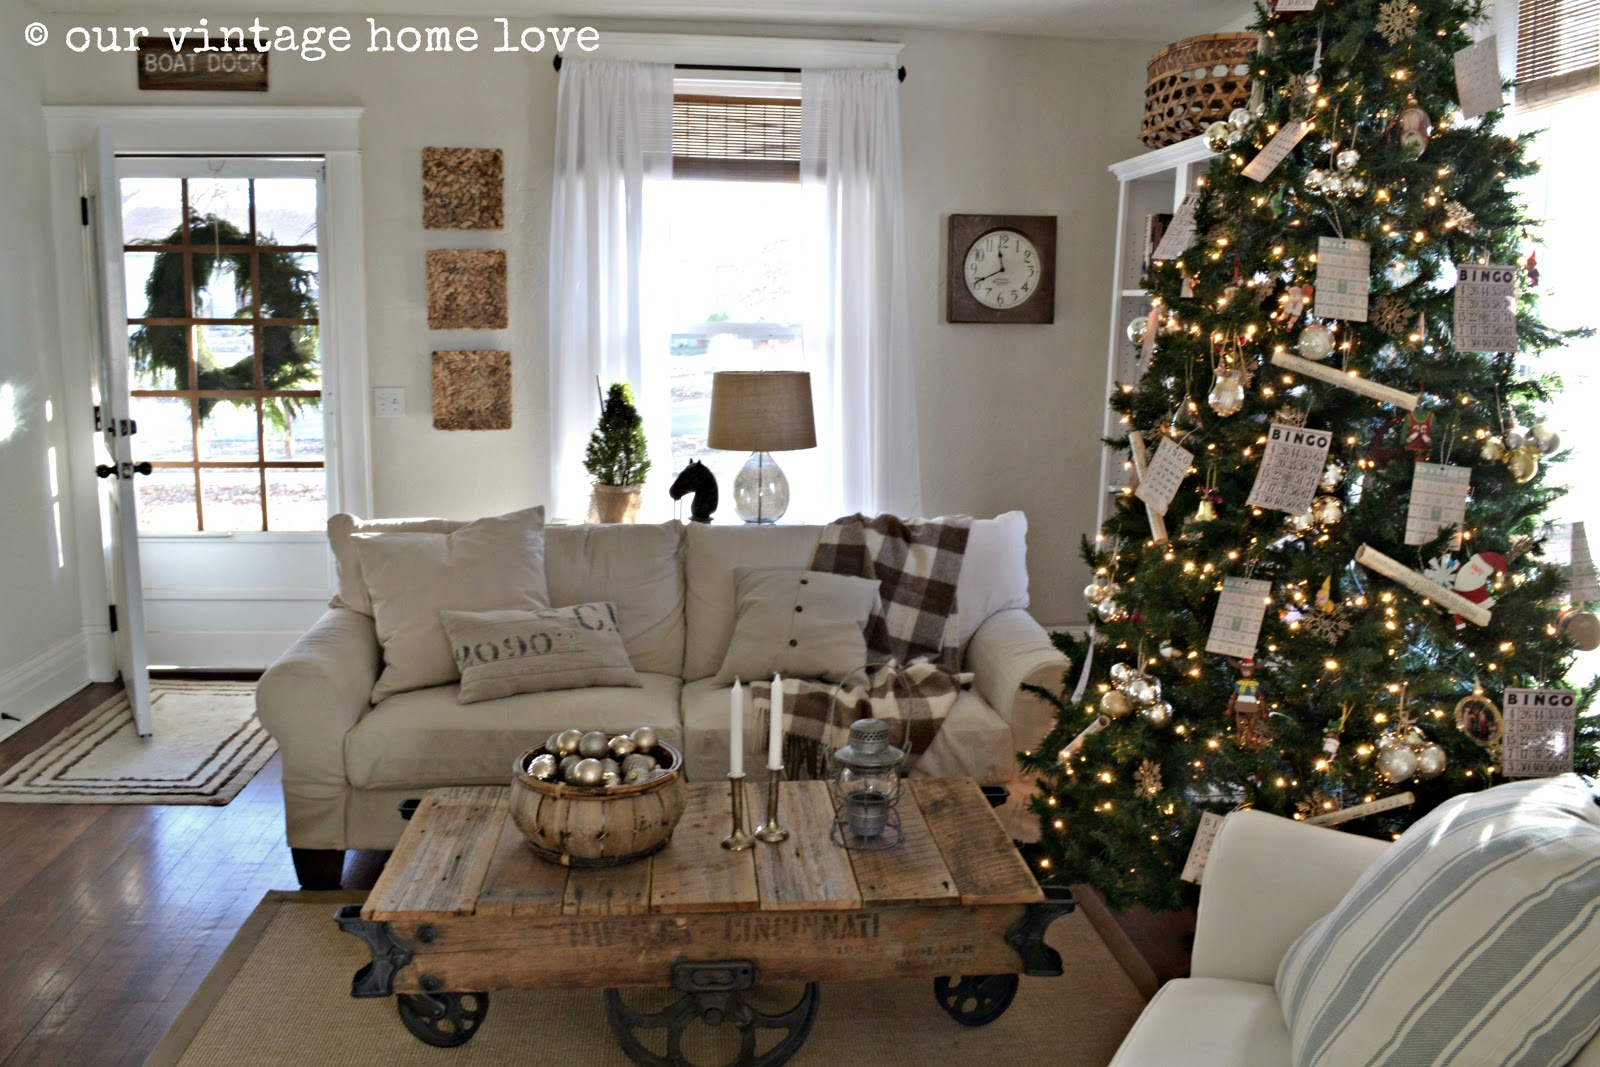 Vintage Home Love: 2012 Christmas Decor Ideas